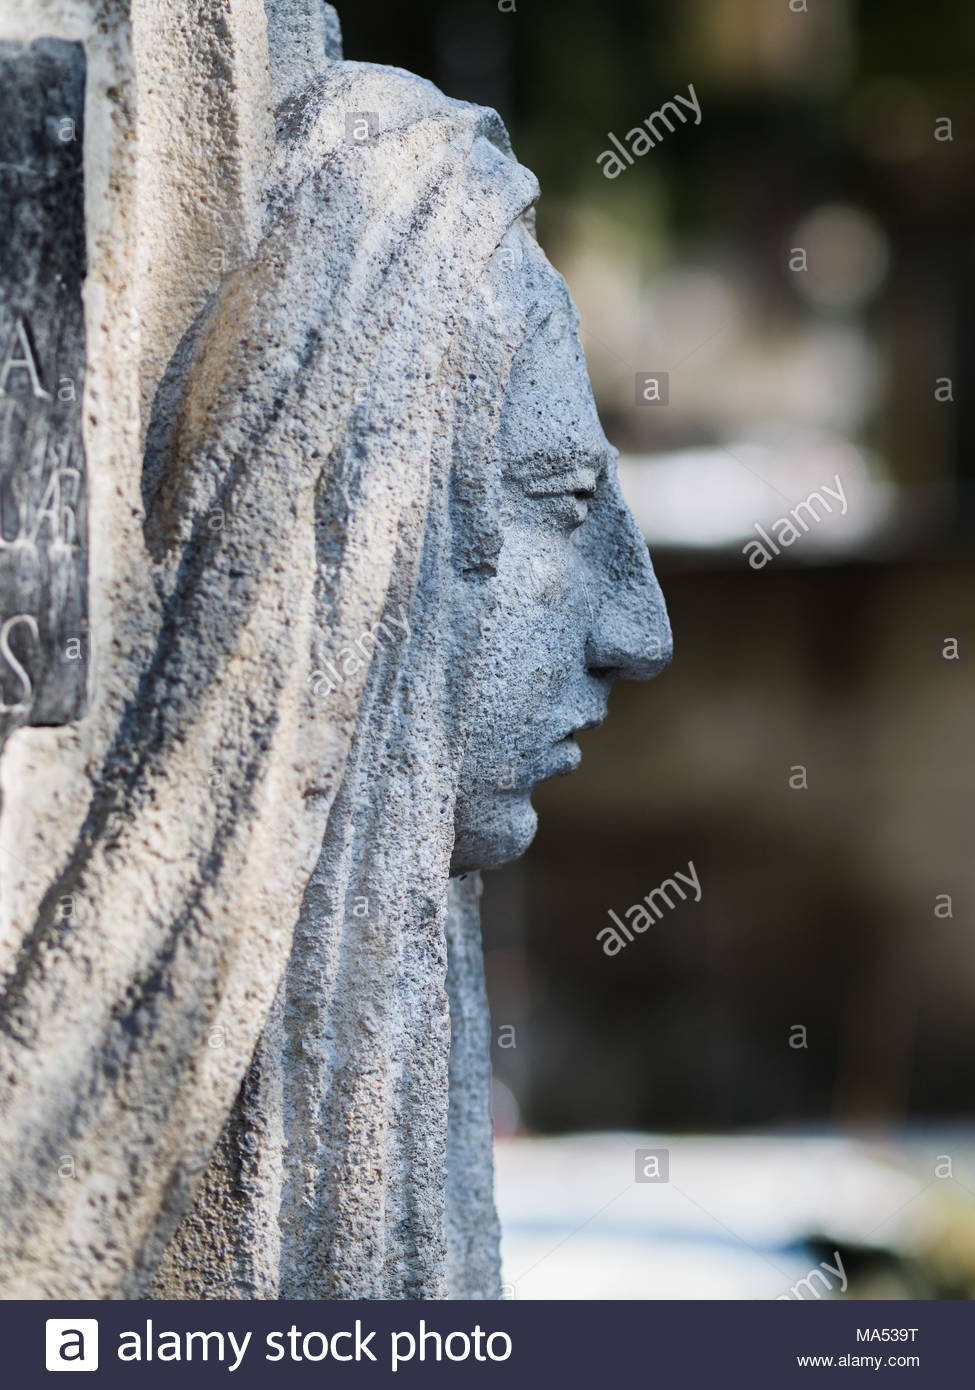 Ancient slightly faided statue of a woman in a cemetry - Stock Image